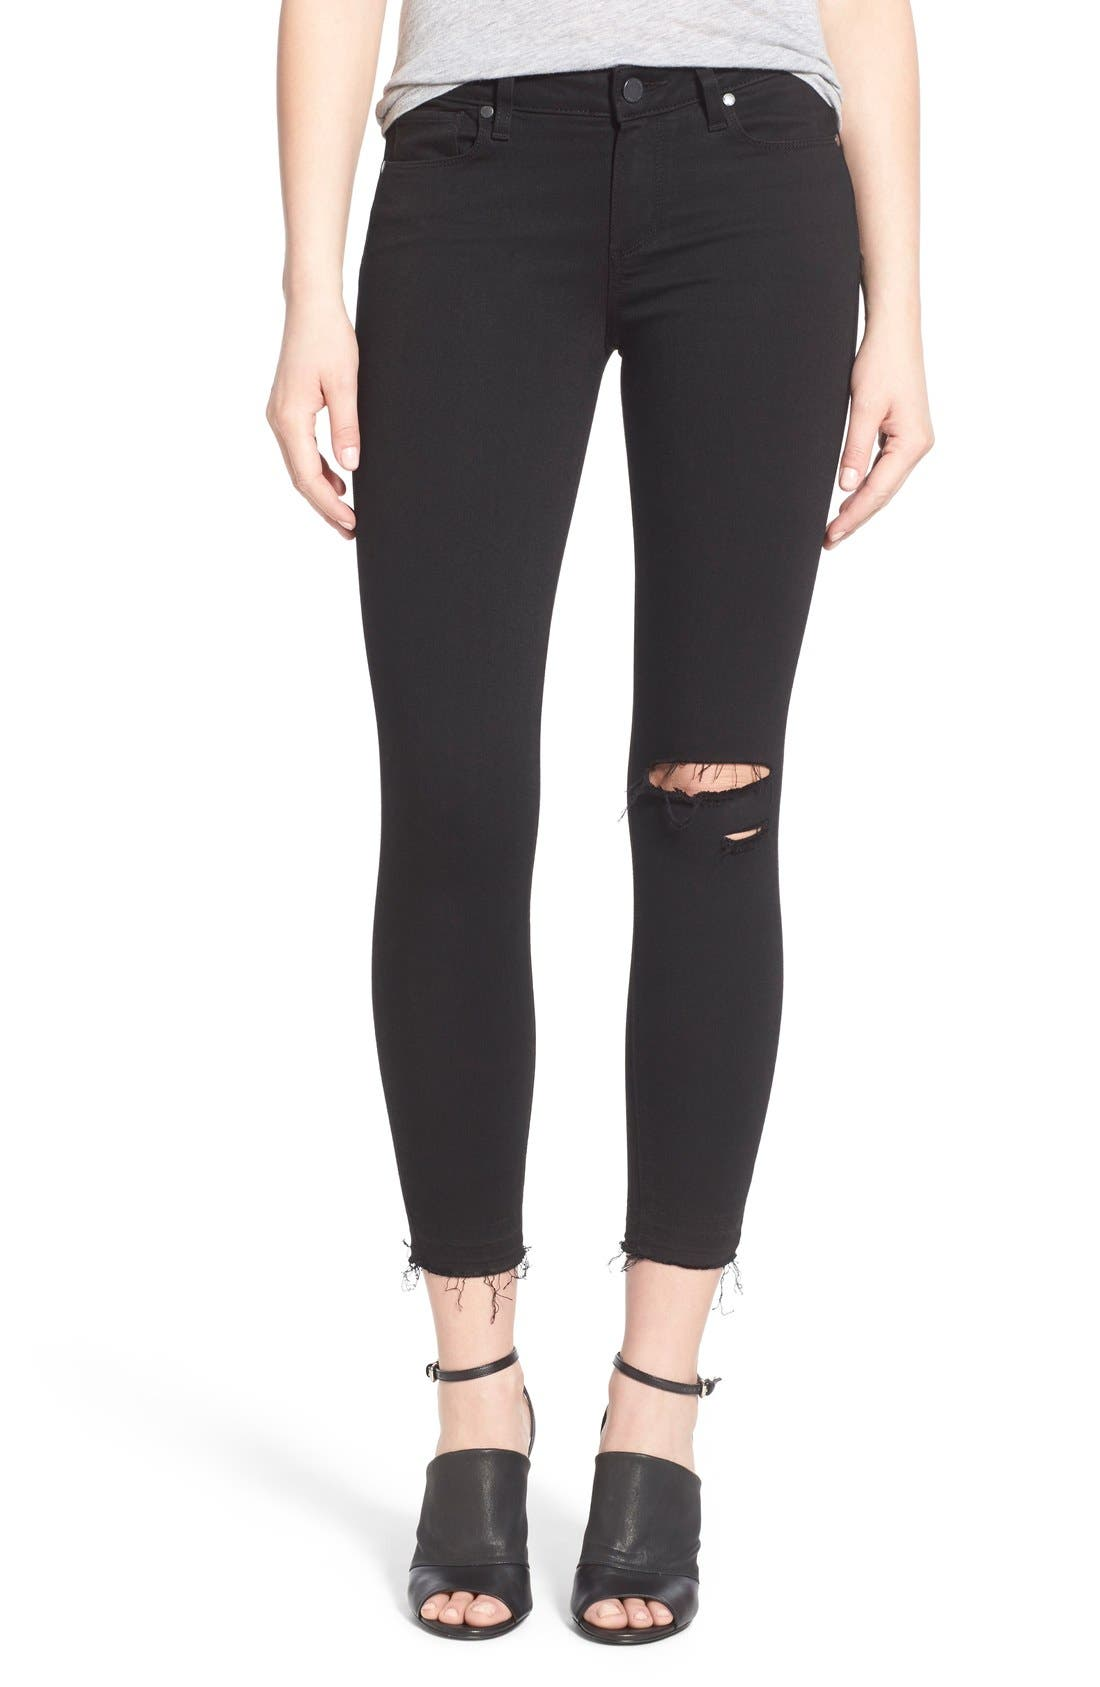 Main Image - PAIGE Transcend - Verdugo Crop Skinny Jeans (Black Destructed)